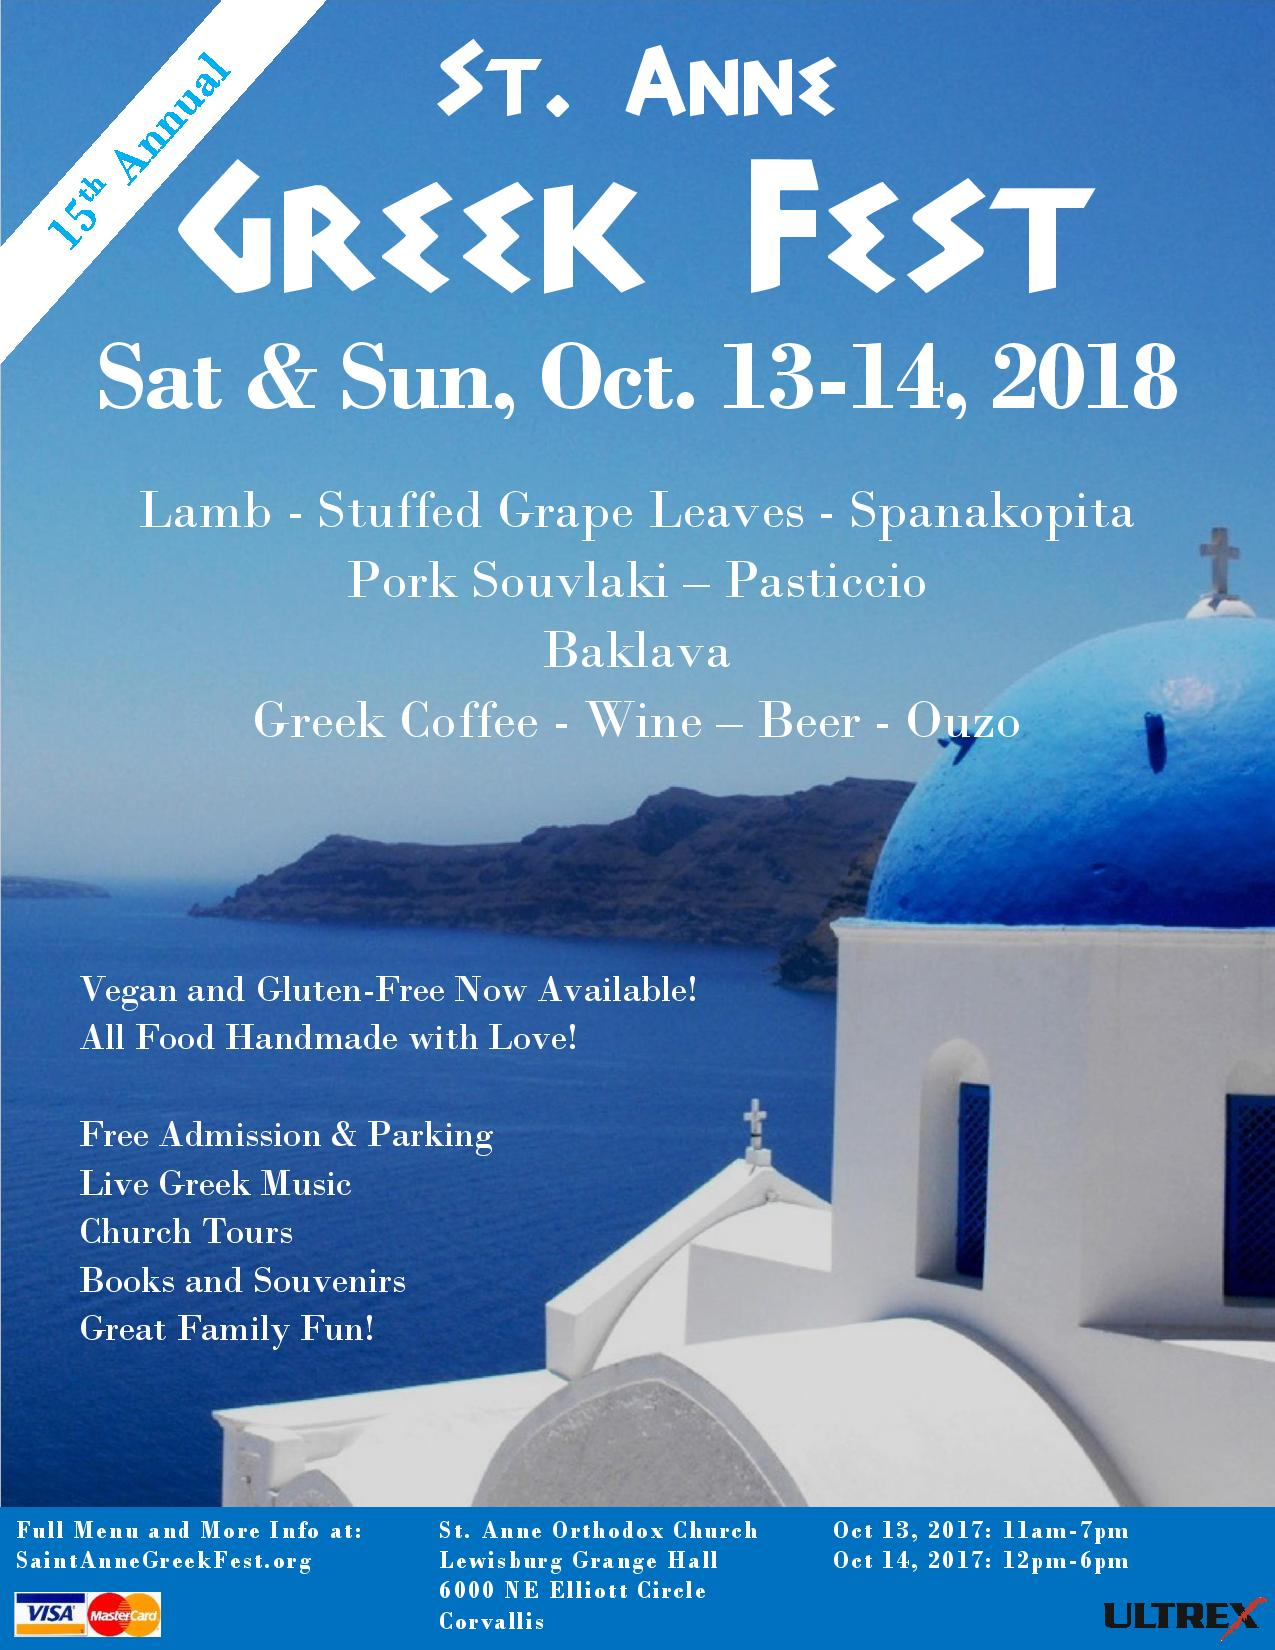 15th Annual Greek Fest at St Annes in Corvallis Oregon Oct 13-14 ...